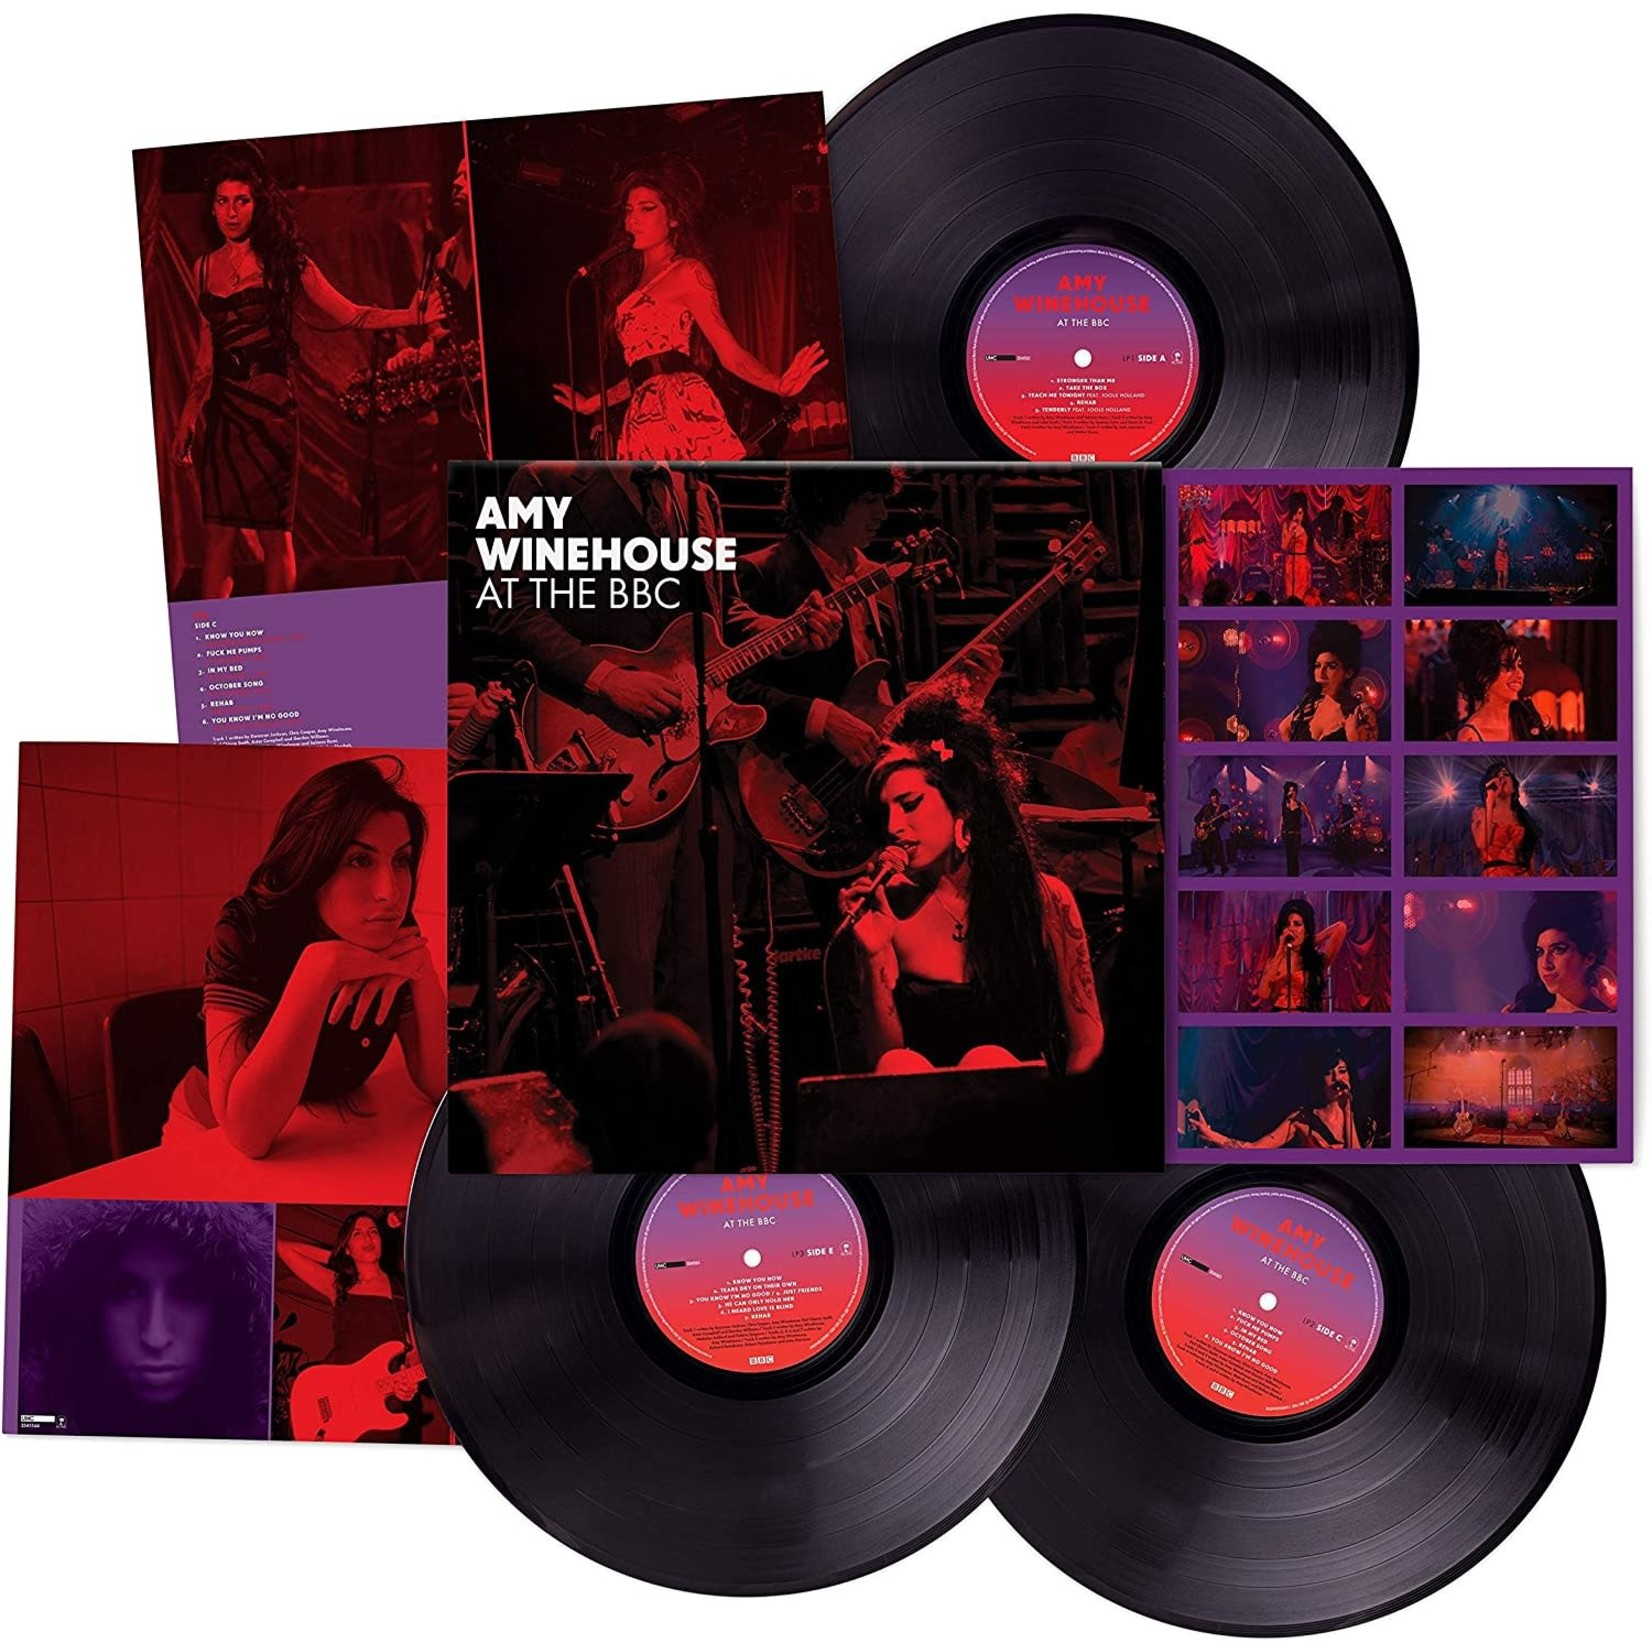 AMY WINEHOUSE AT THE BBC (3LP)